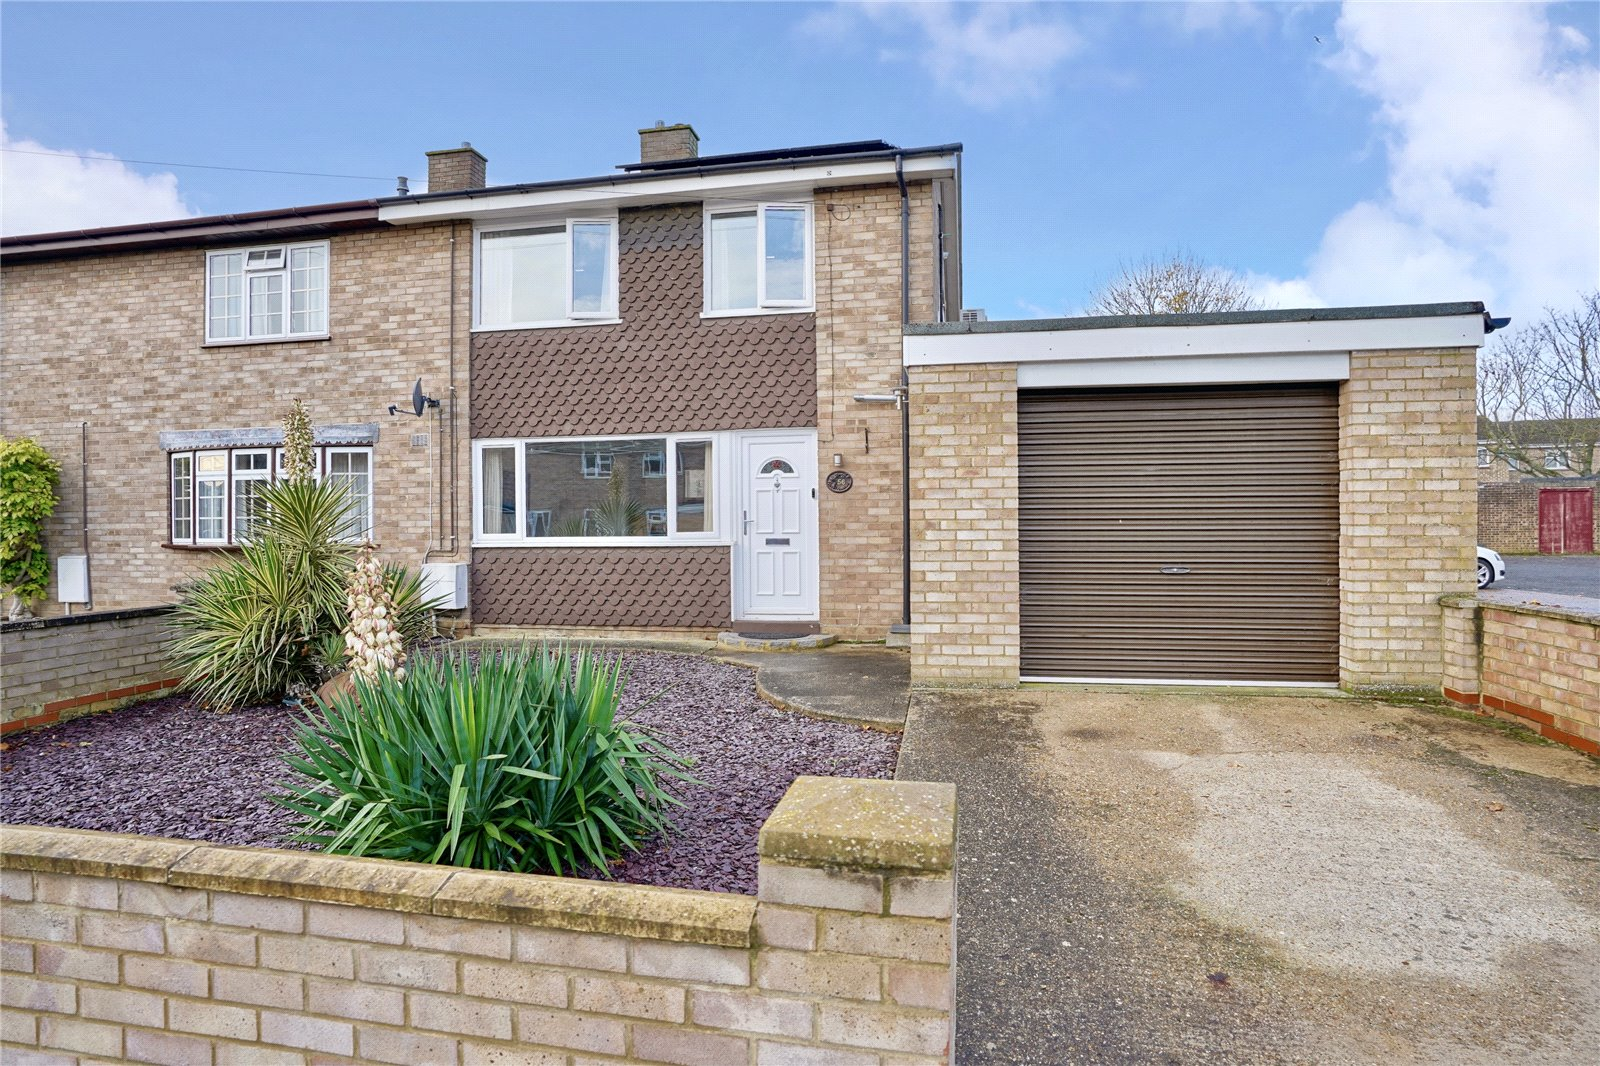 3 bed house for sale in Eaton Socon, Kings Road, PE19 8DB, PE19